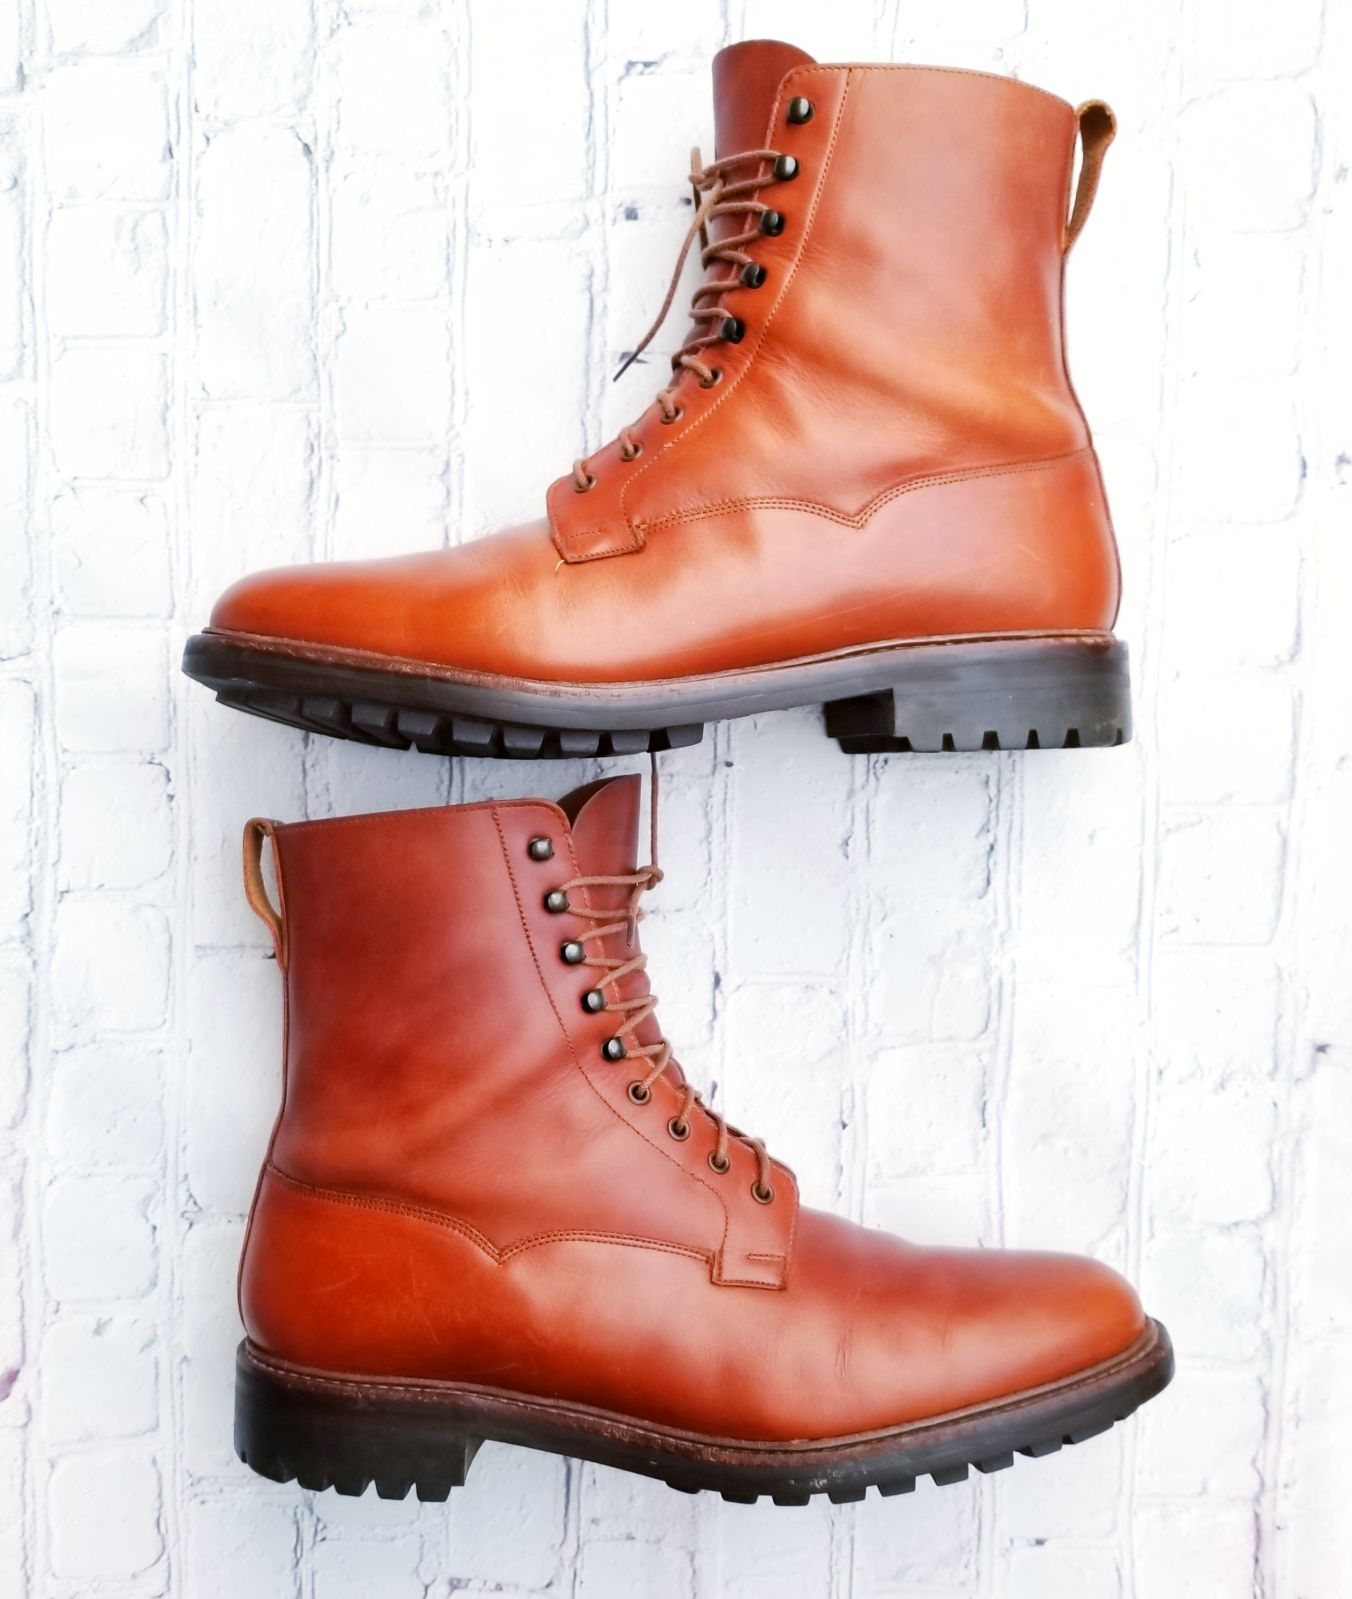 Brooks Brothers Peal & Co. Leather Boots